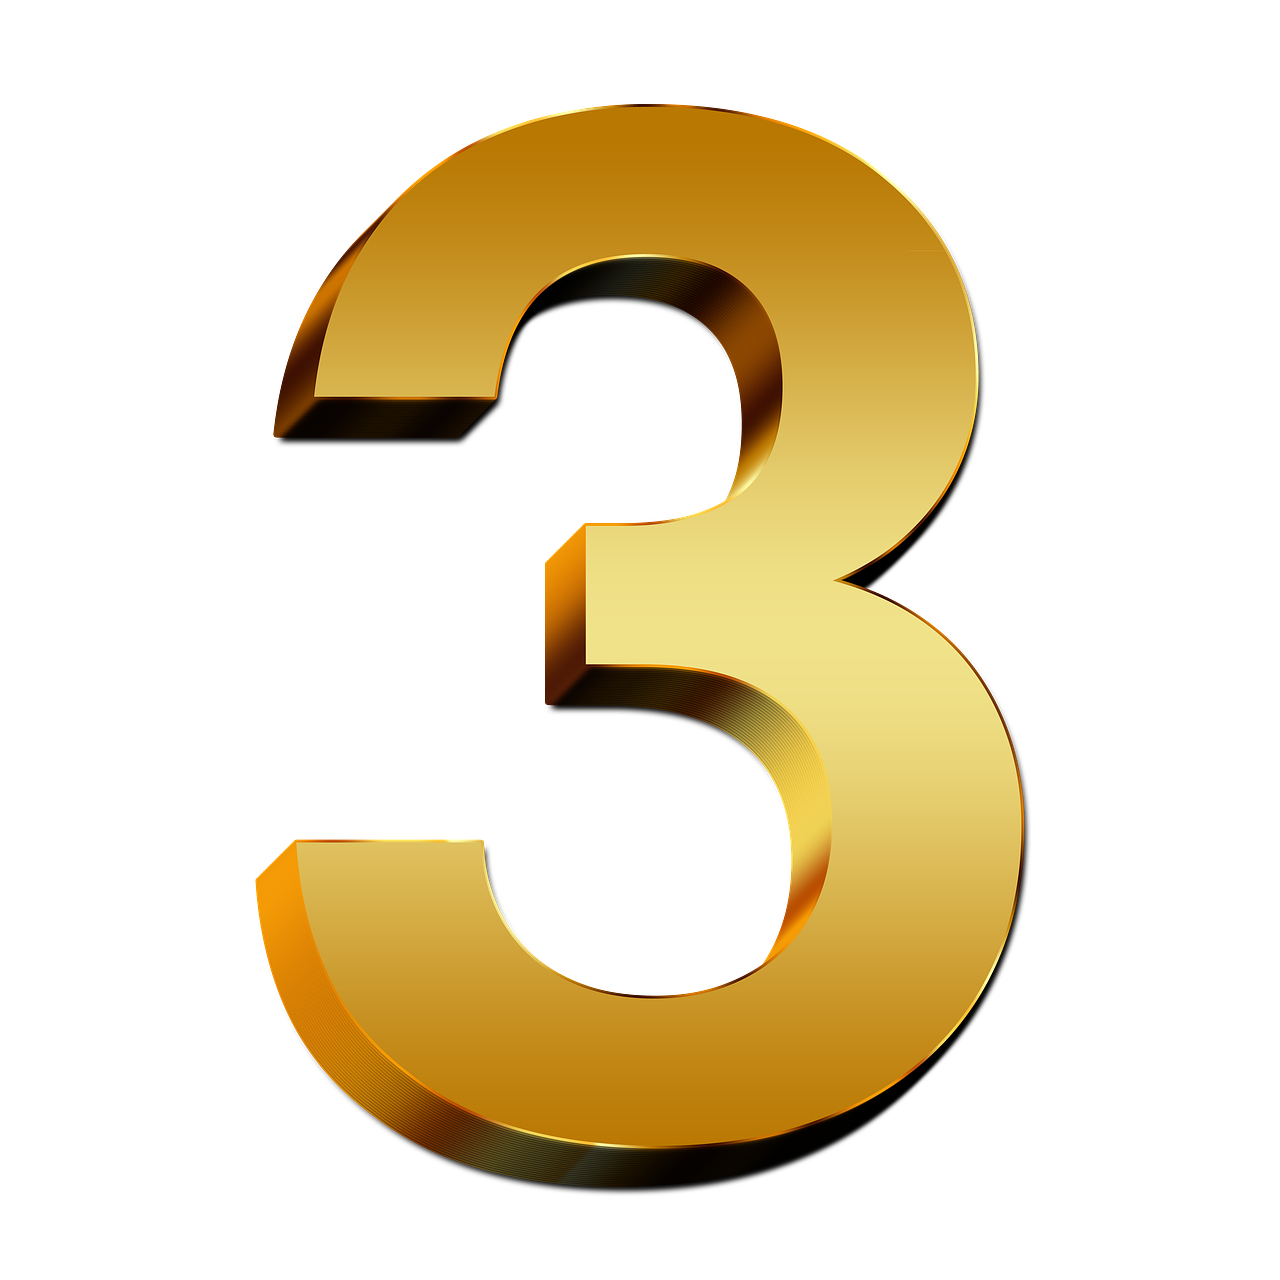 the number 3 png